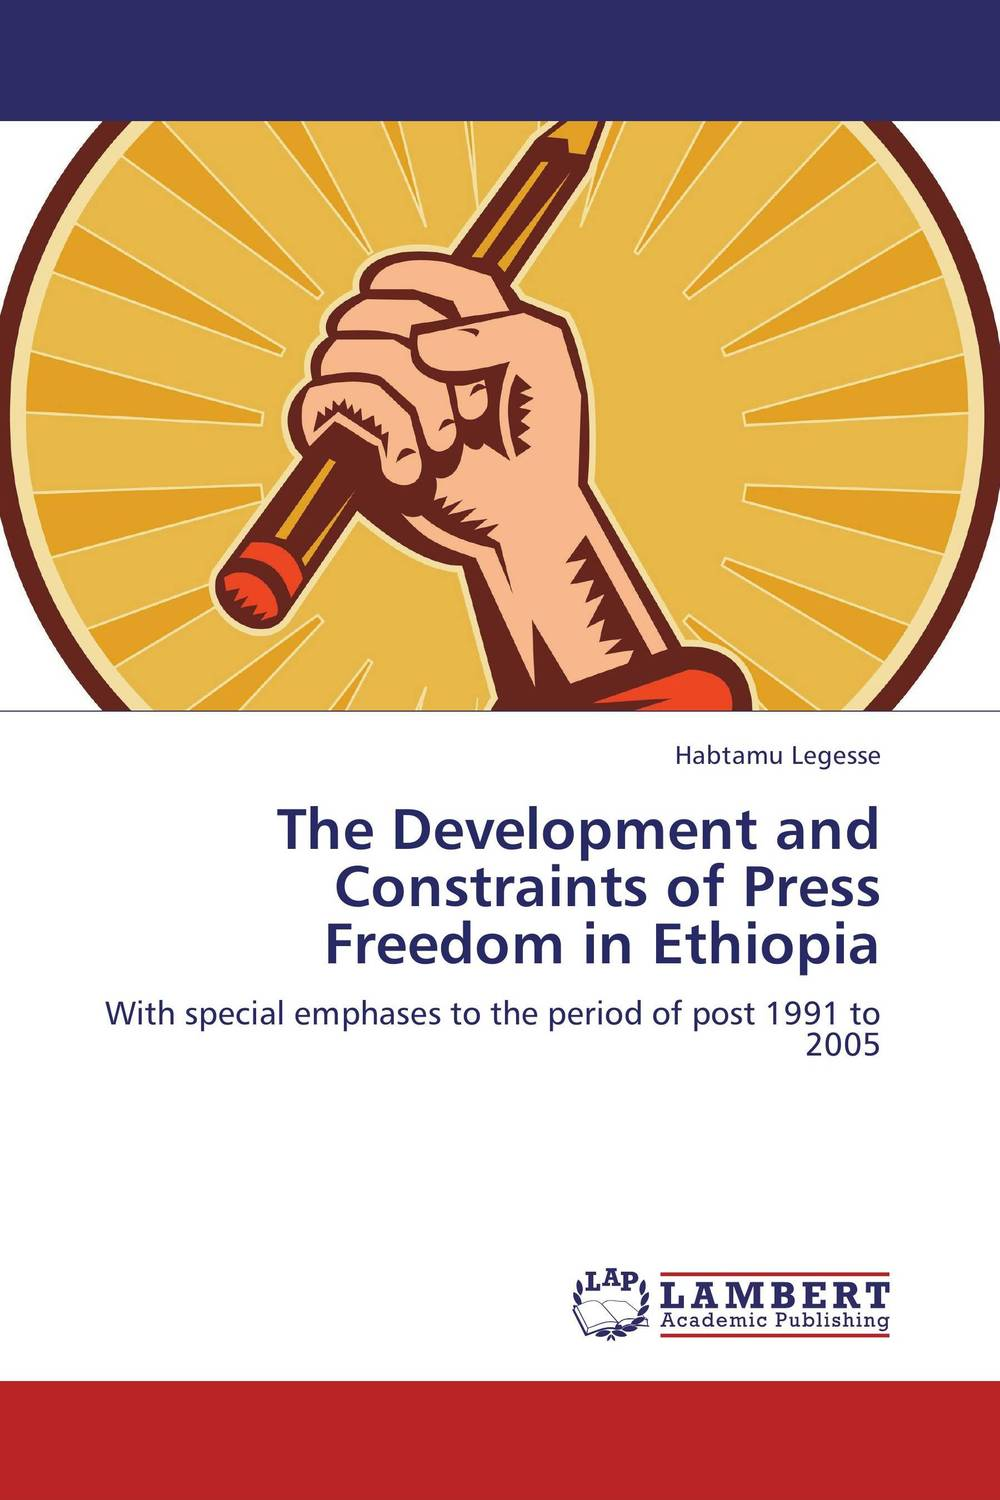 The Development and Constraints of Press Freedom in Ethiopia ручка шариковая pilot bps gp fine цвет черный